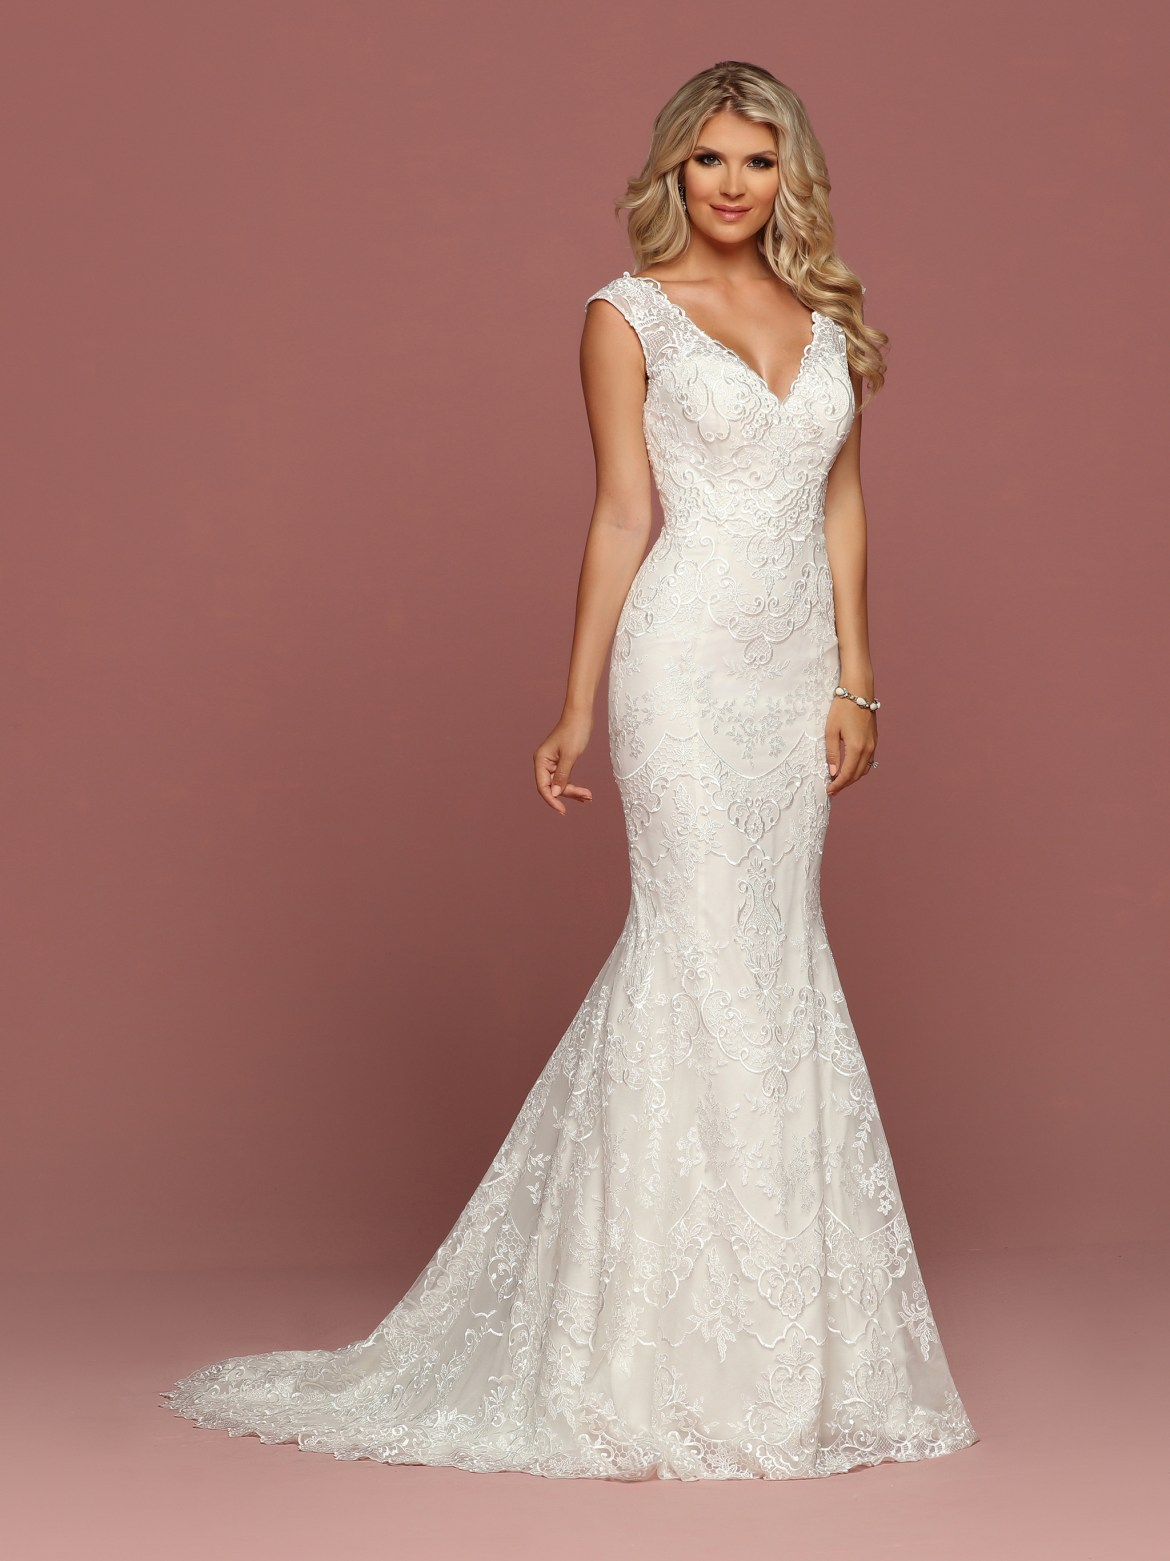 Sophisticated Sheath Wedding Dress Collection For 2018 Davinci